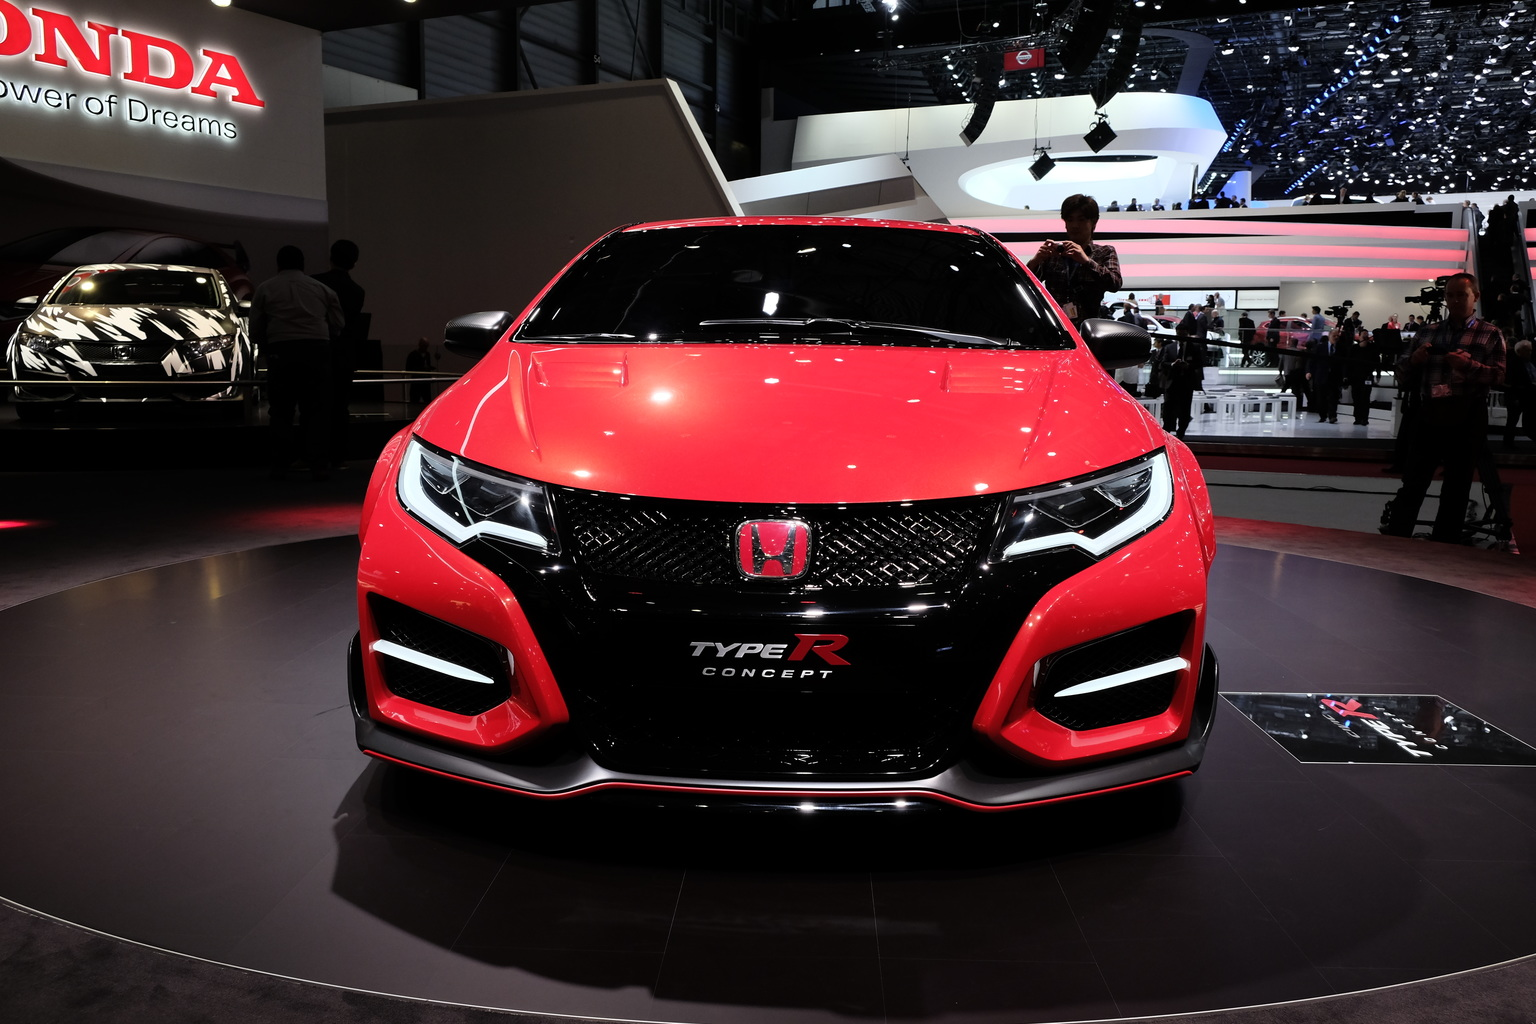 2014 Honda Civic Type R Concept